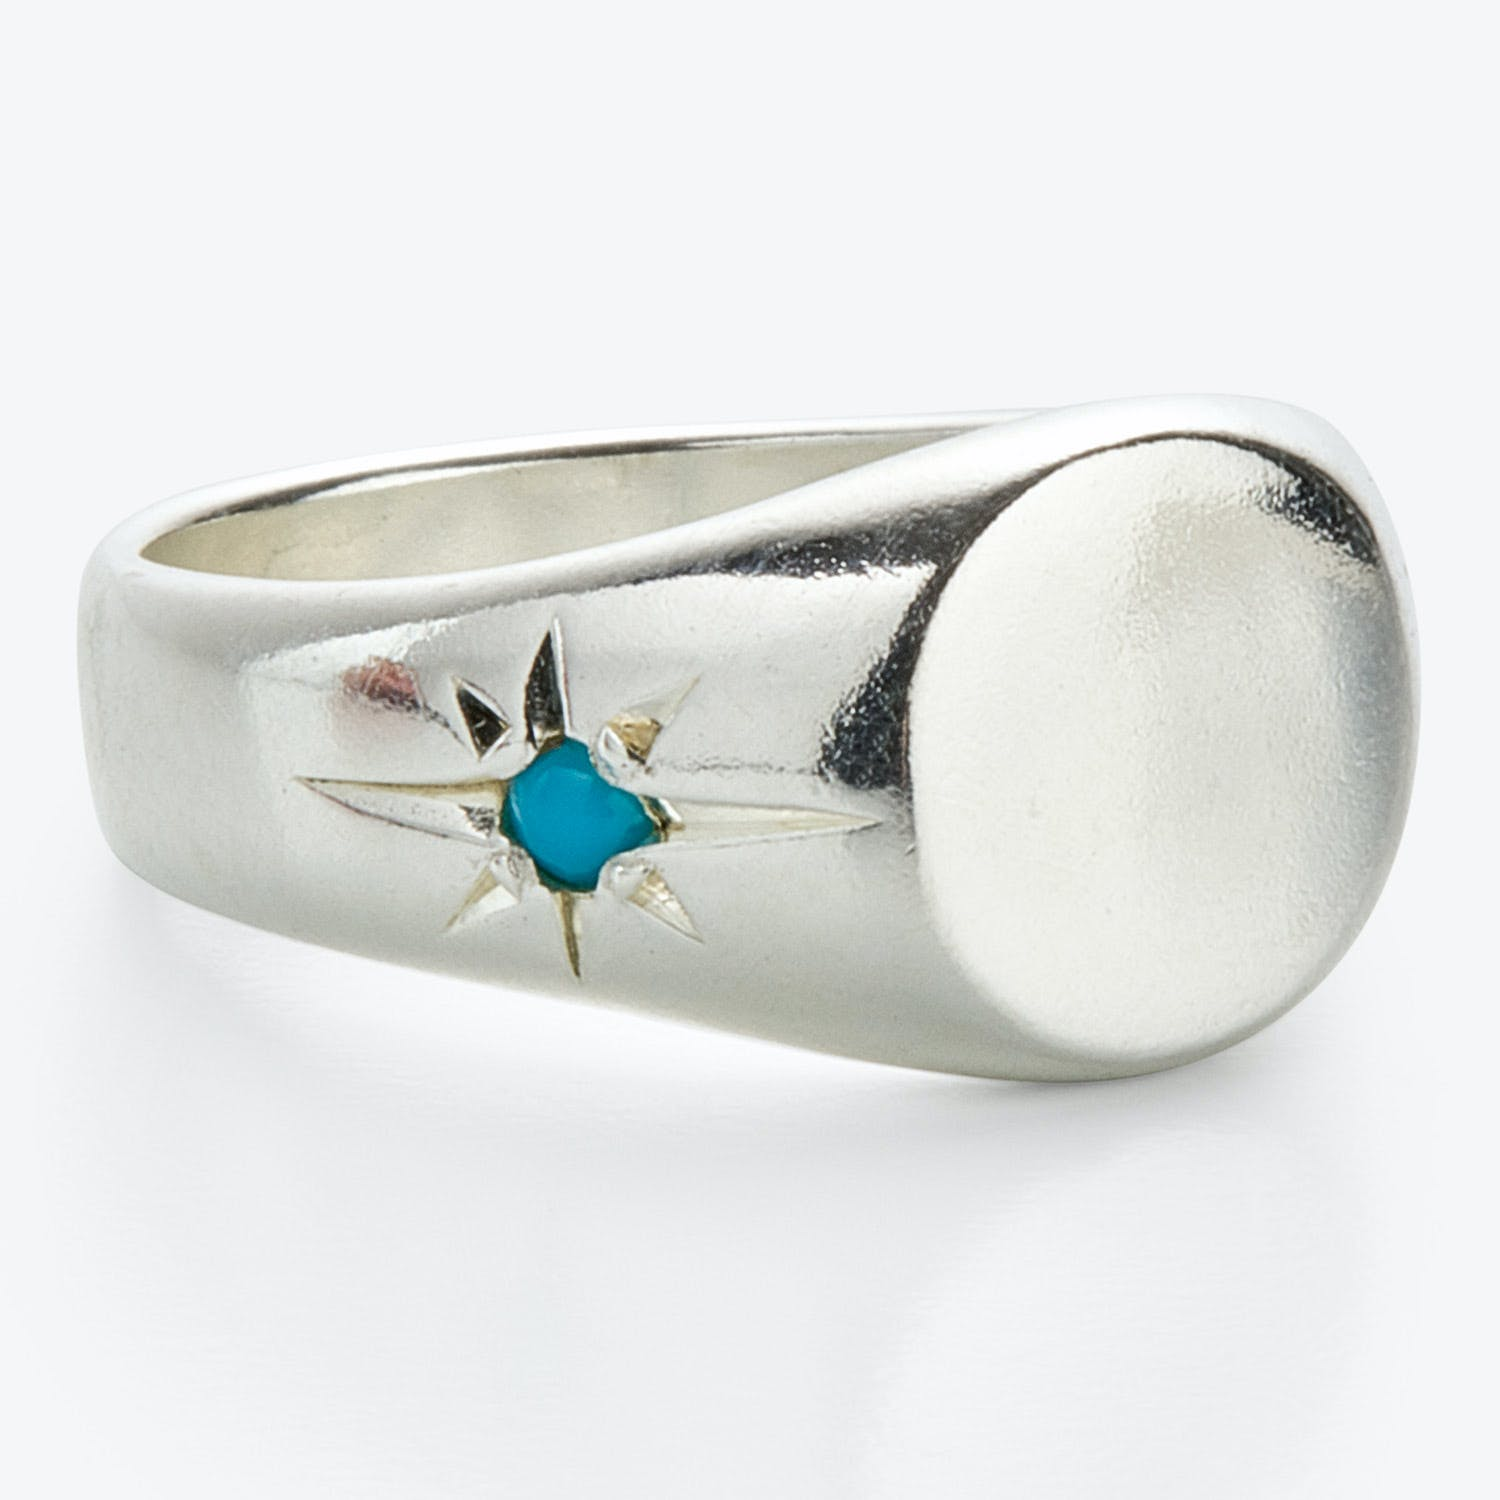 Scosha Pinky Signet Ring Turquoise, Sterling Silver